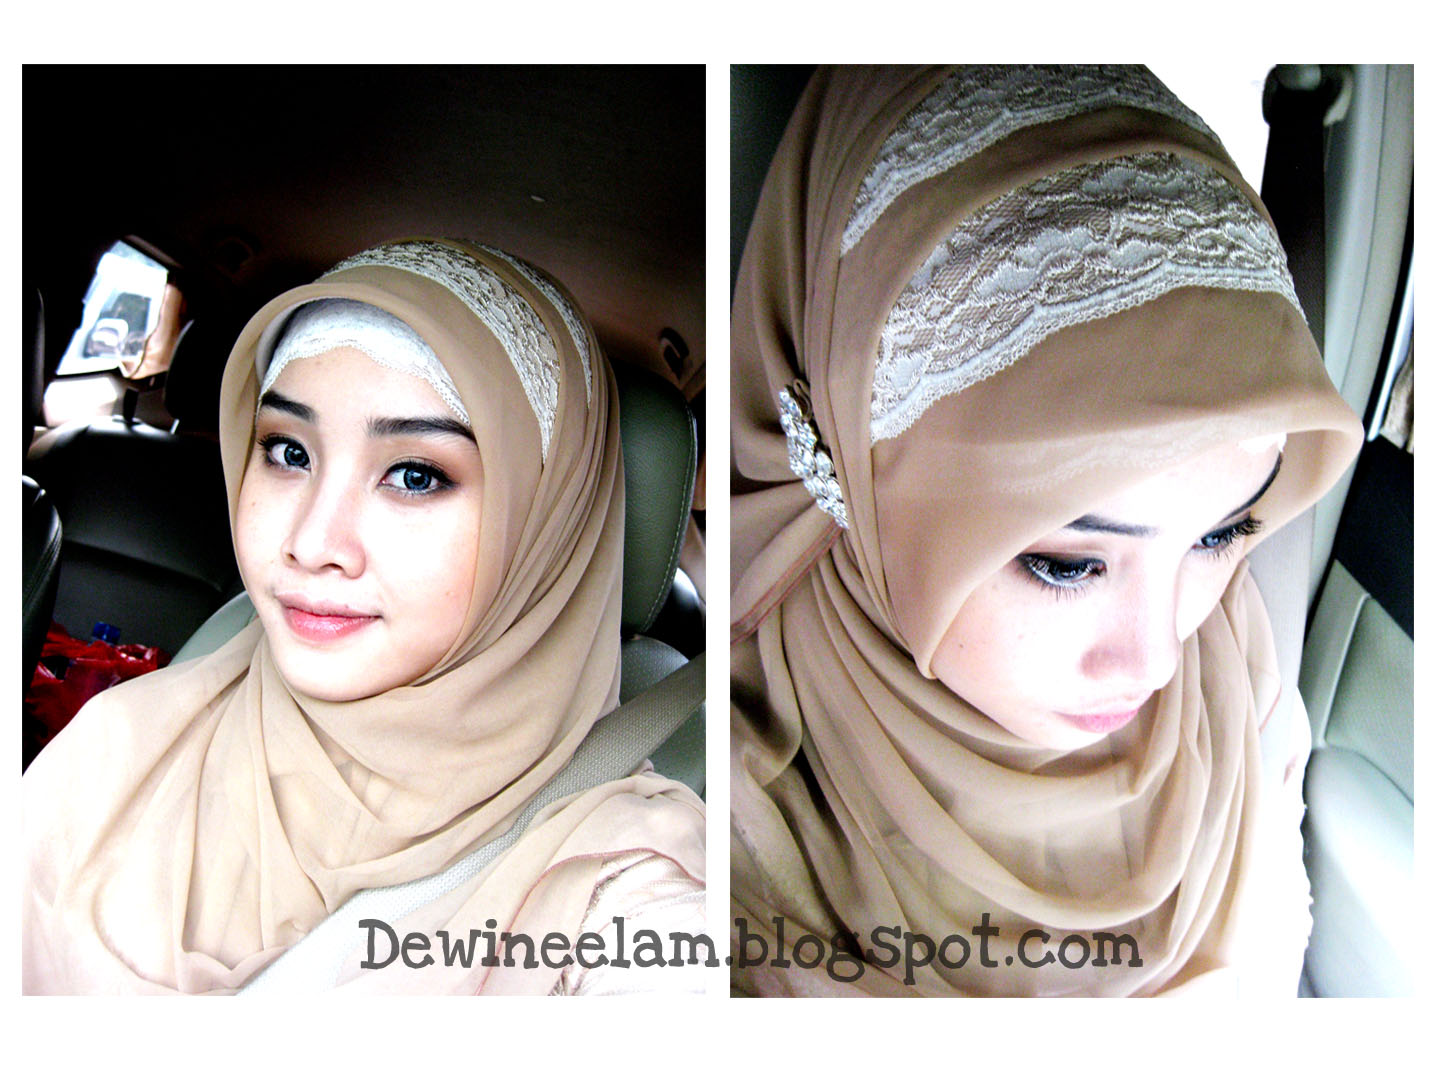 Dewi Neelam By Irna Hijab For Graduation Even Or Wedding